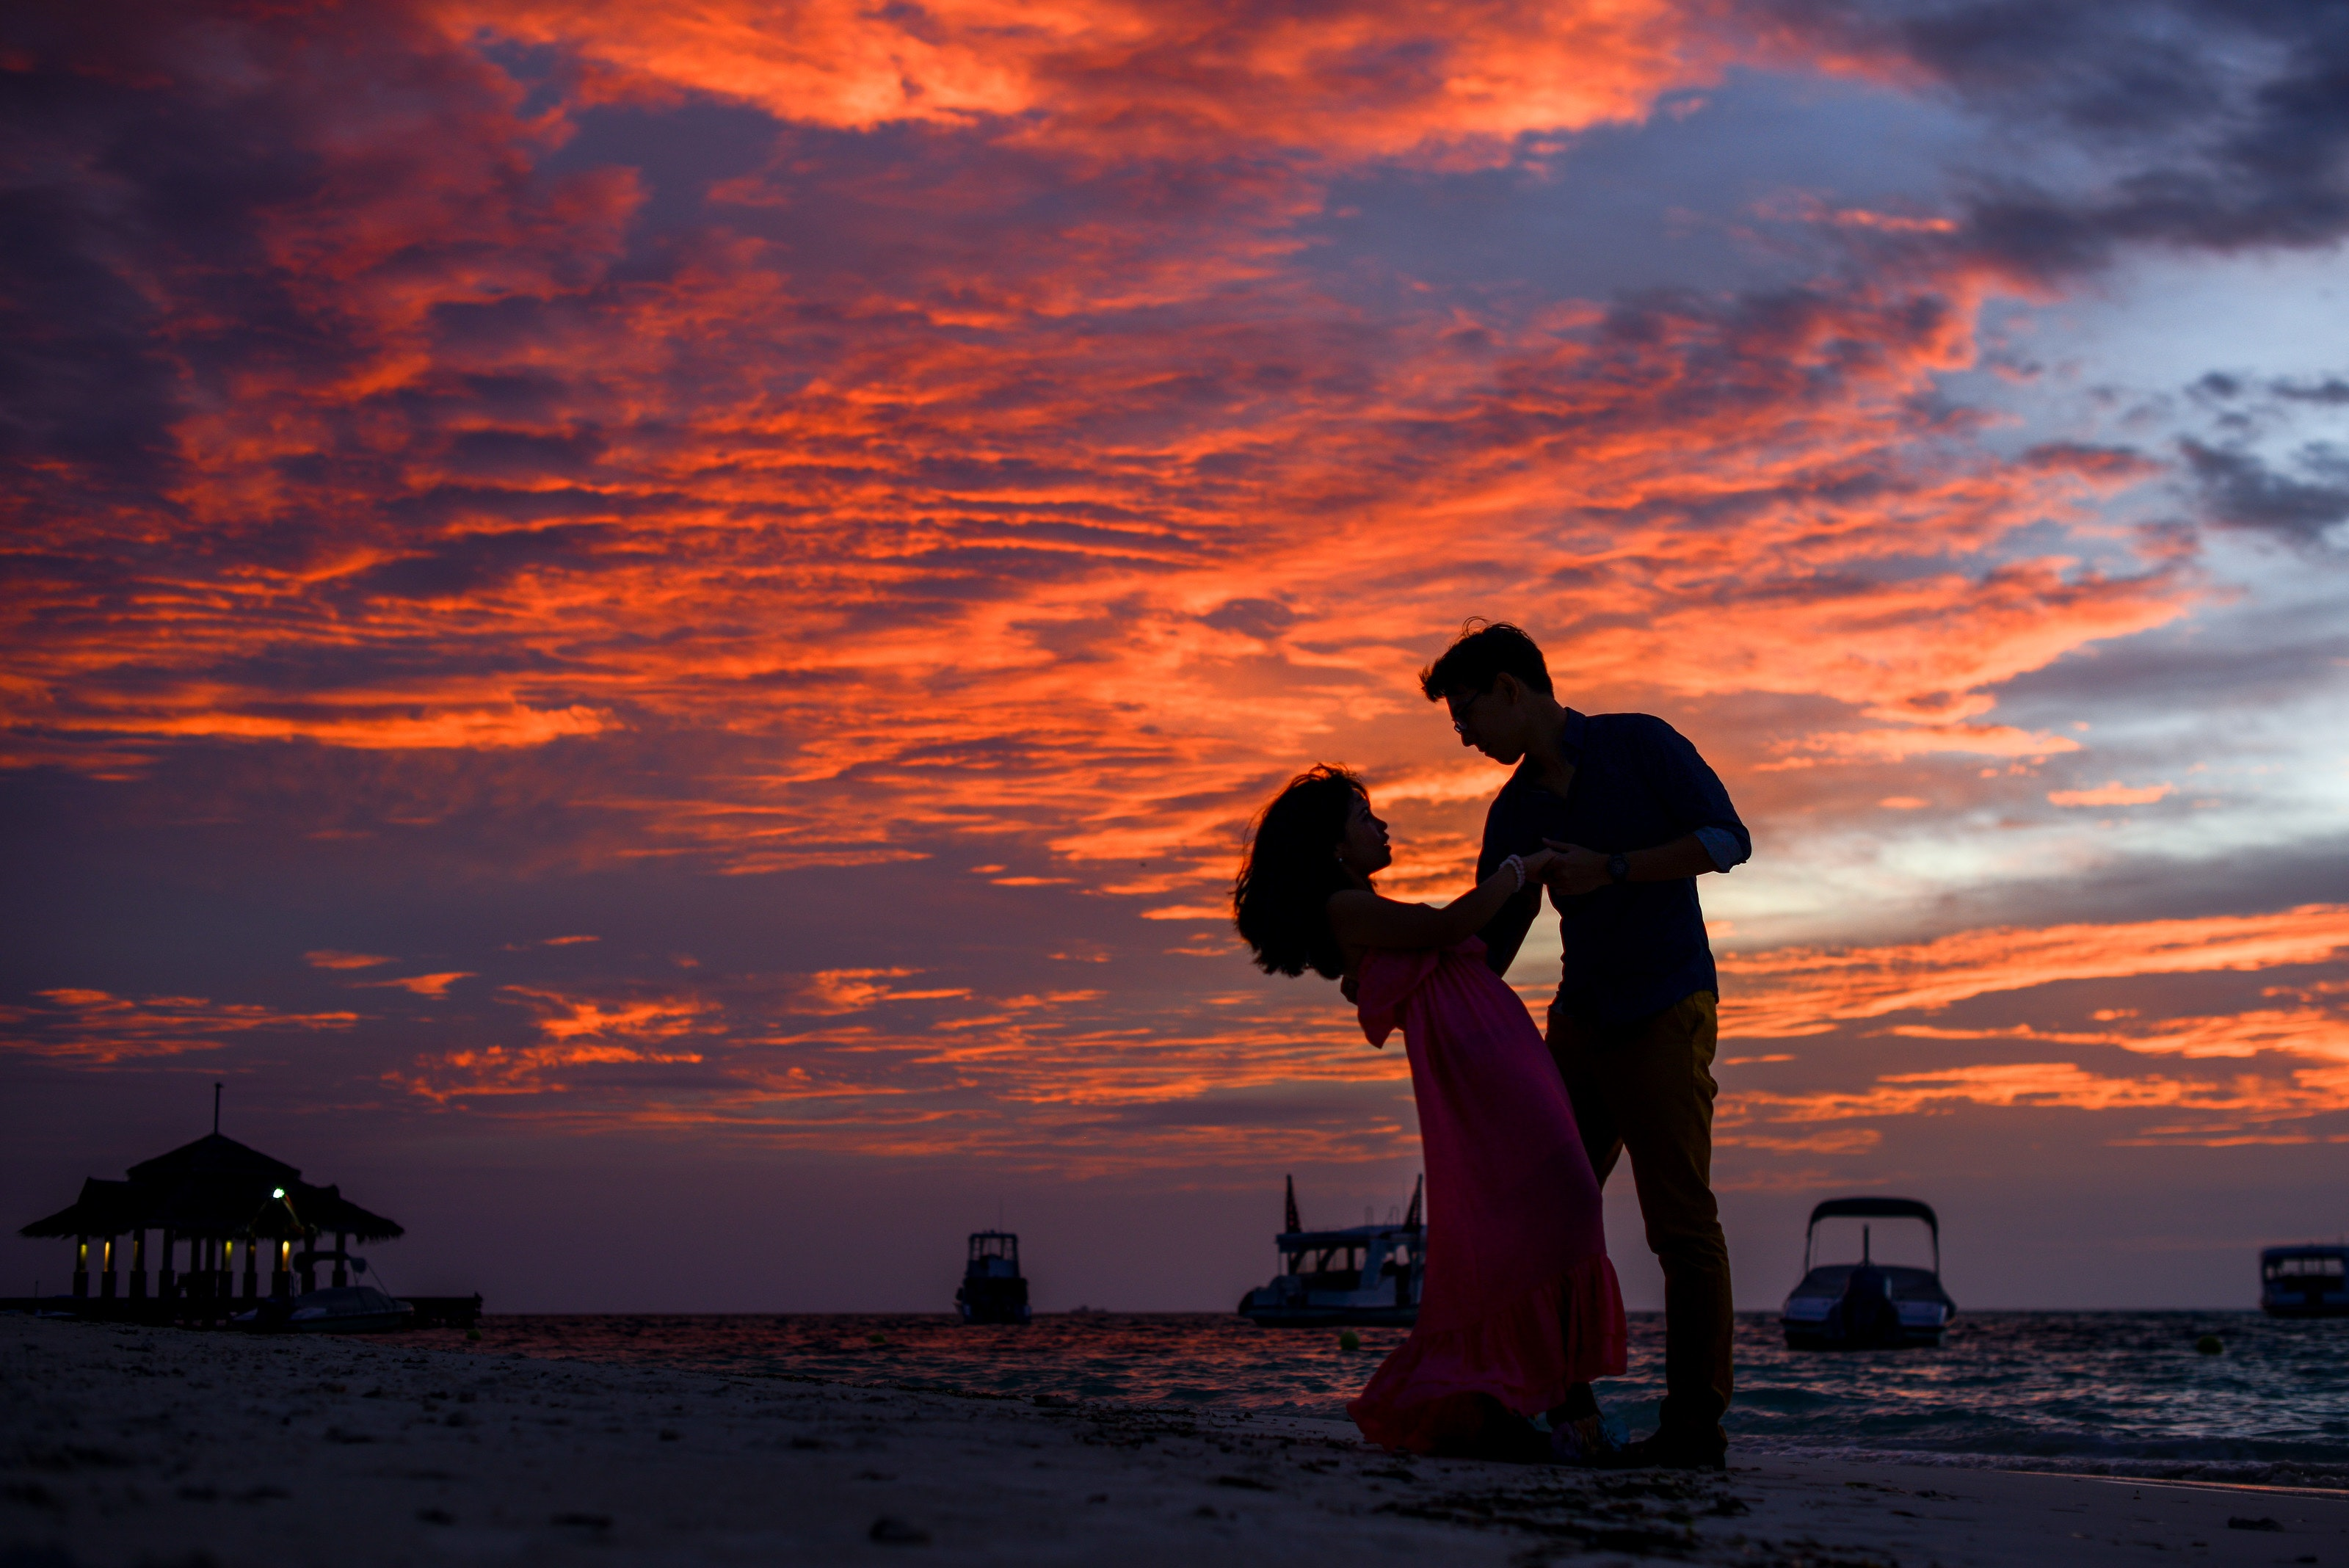 man-and-woman-on-beach-during-sunset-1024963.jpg